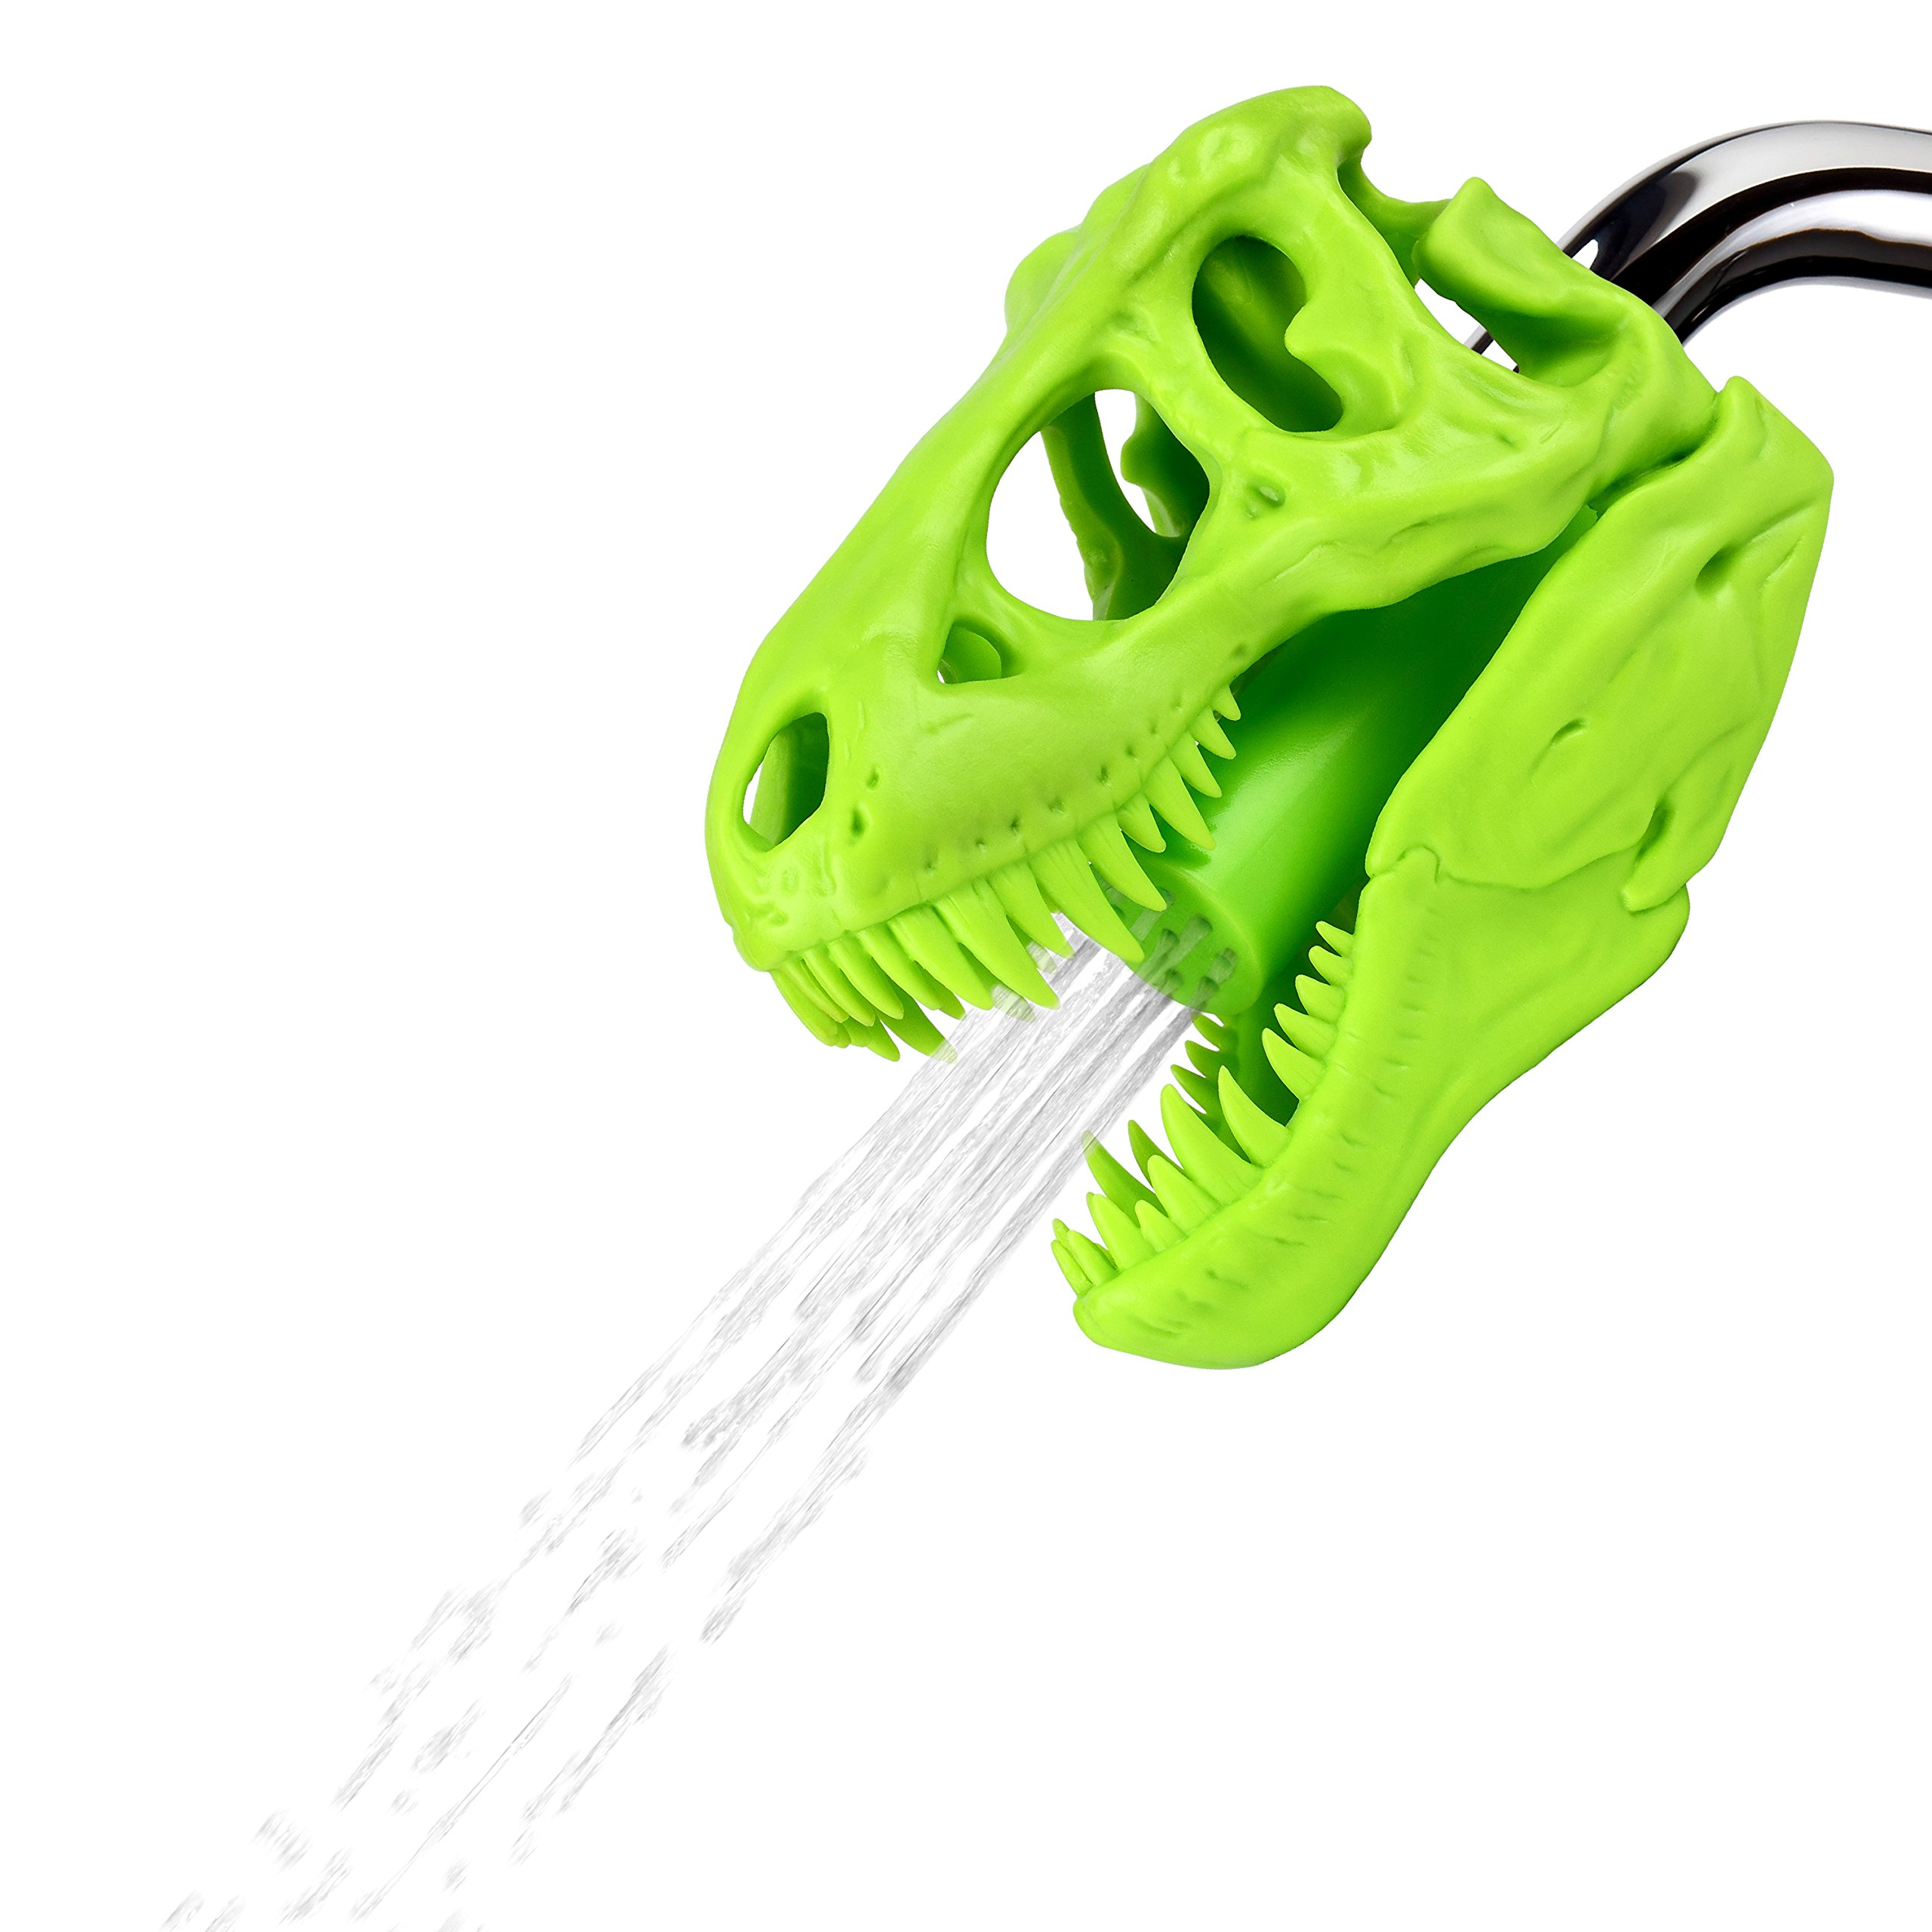 Barbuzzo T-Rex Shower Head, Green - Prehistoric Shower Nozzle Shaped like a Tyrannosaurus Rex Skull - Gives Your Shower-Time a Jurassic Touch - Terrific Gift for Kids & Dino-Enthusiasts - Wash N' Roar by Barbuzzo (Image #1)